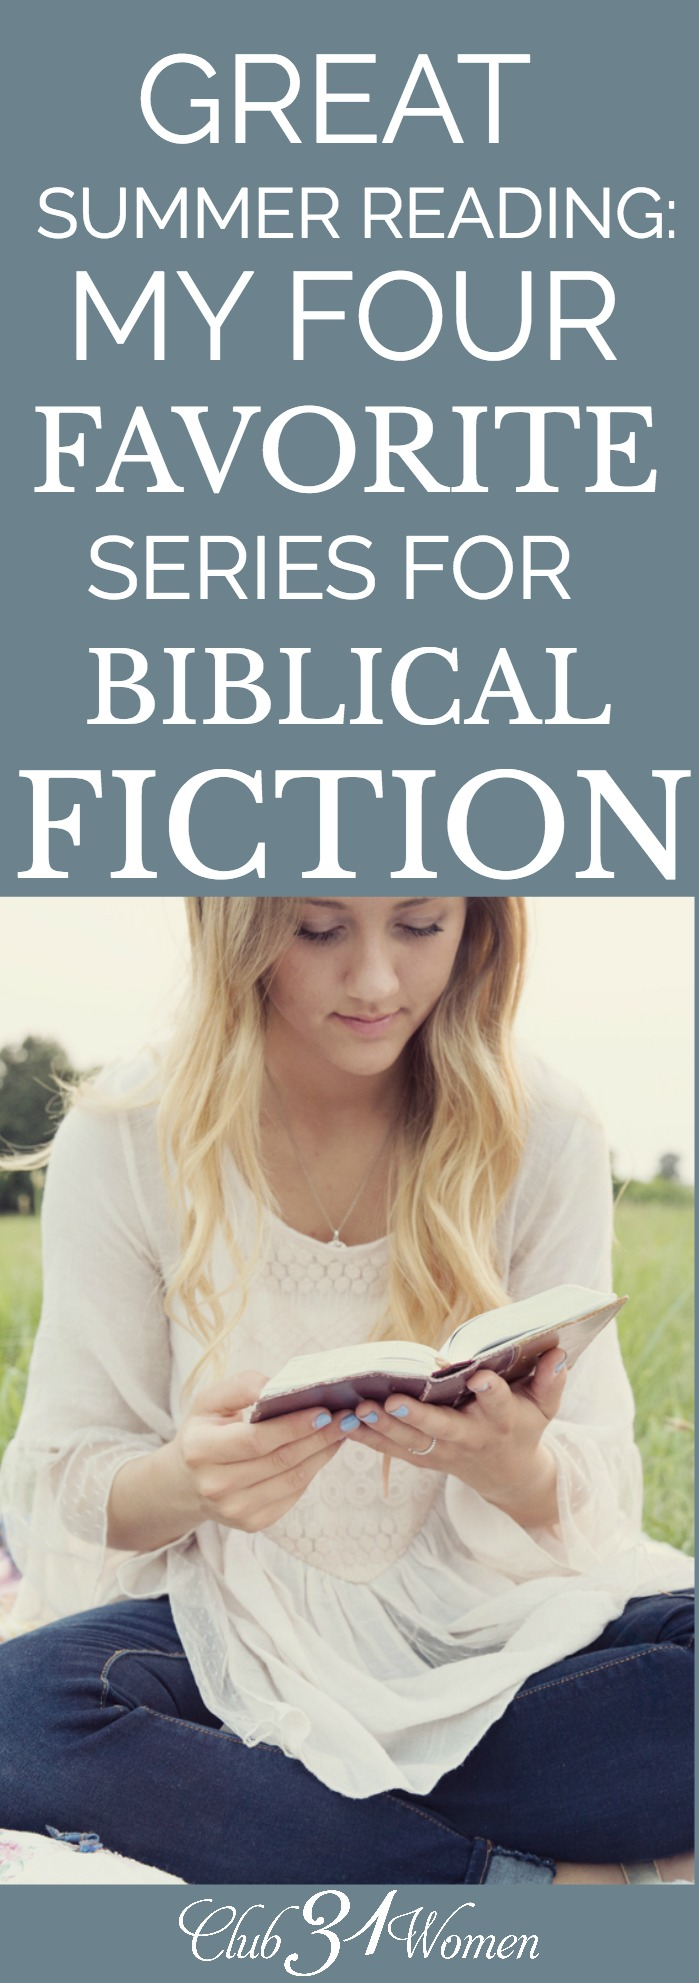 Sometimes engaging in bible stories can become stale or hard to understand. Why not try a fictional version to bring you deeper into the story? Try these! via @Club31Women